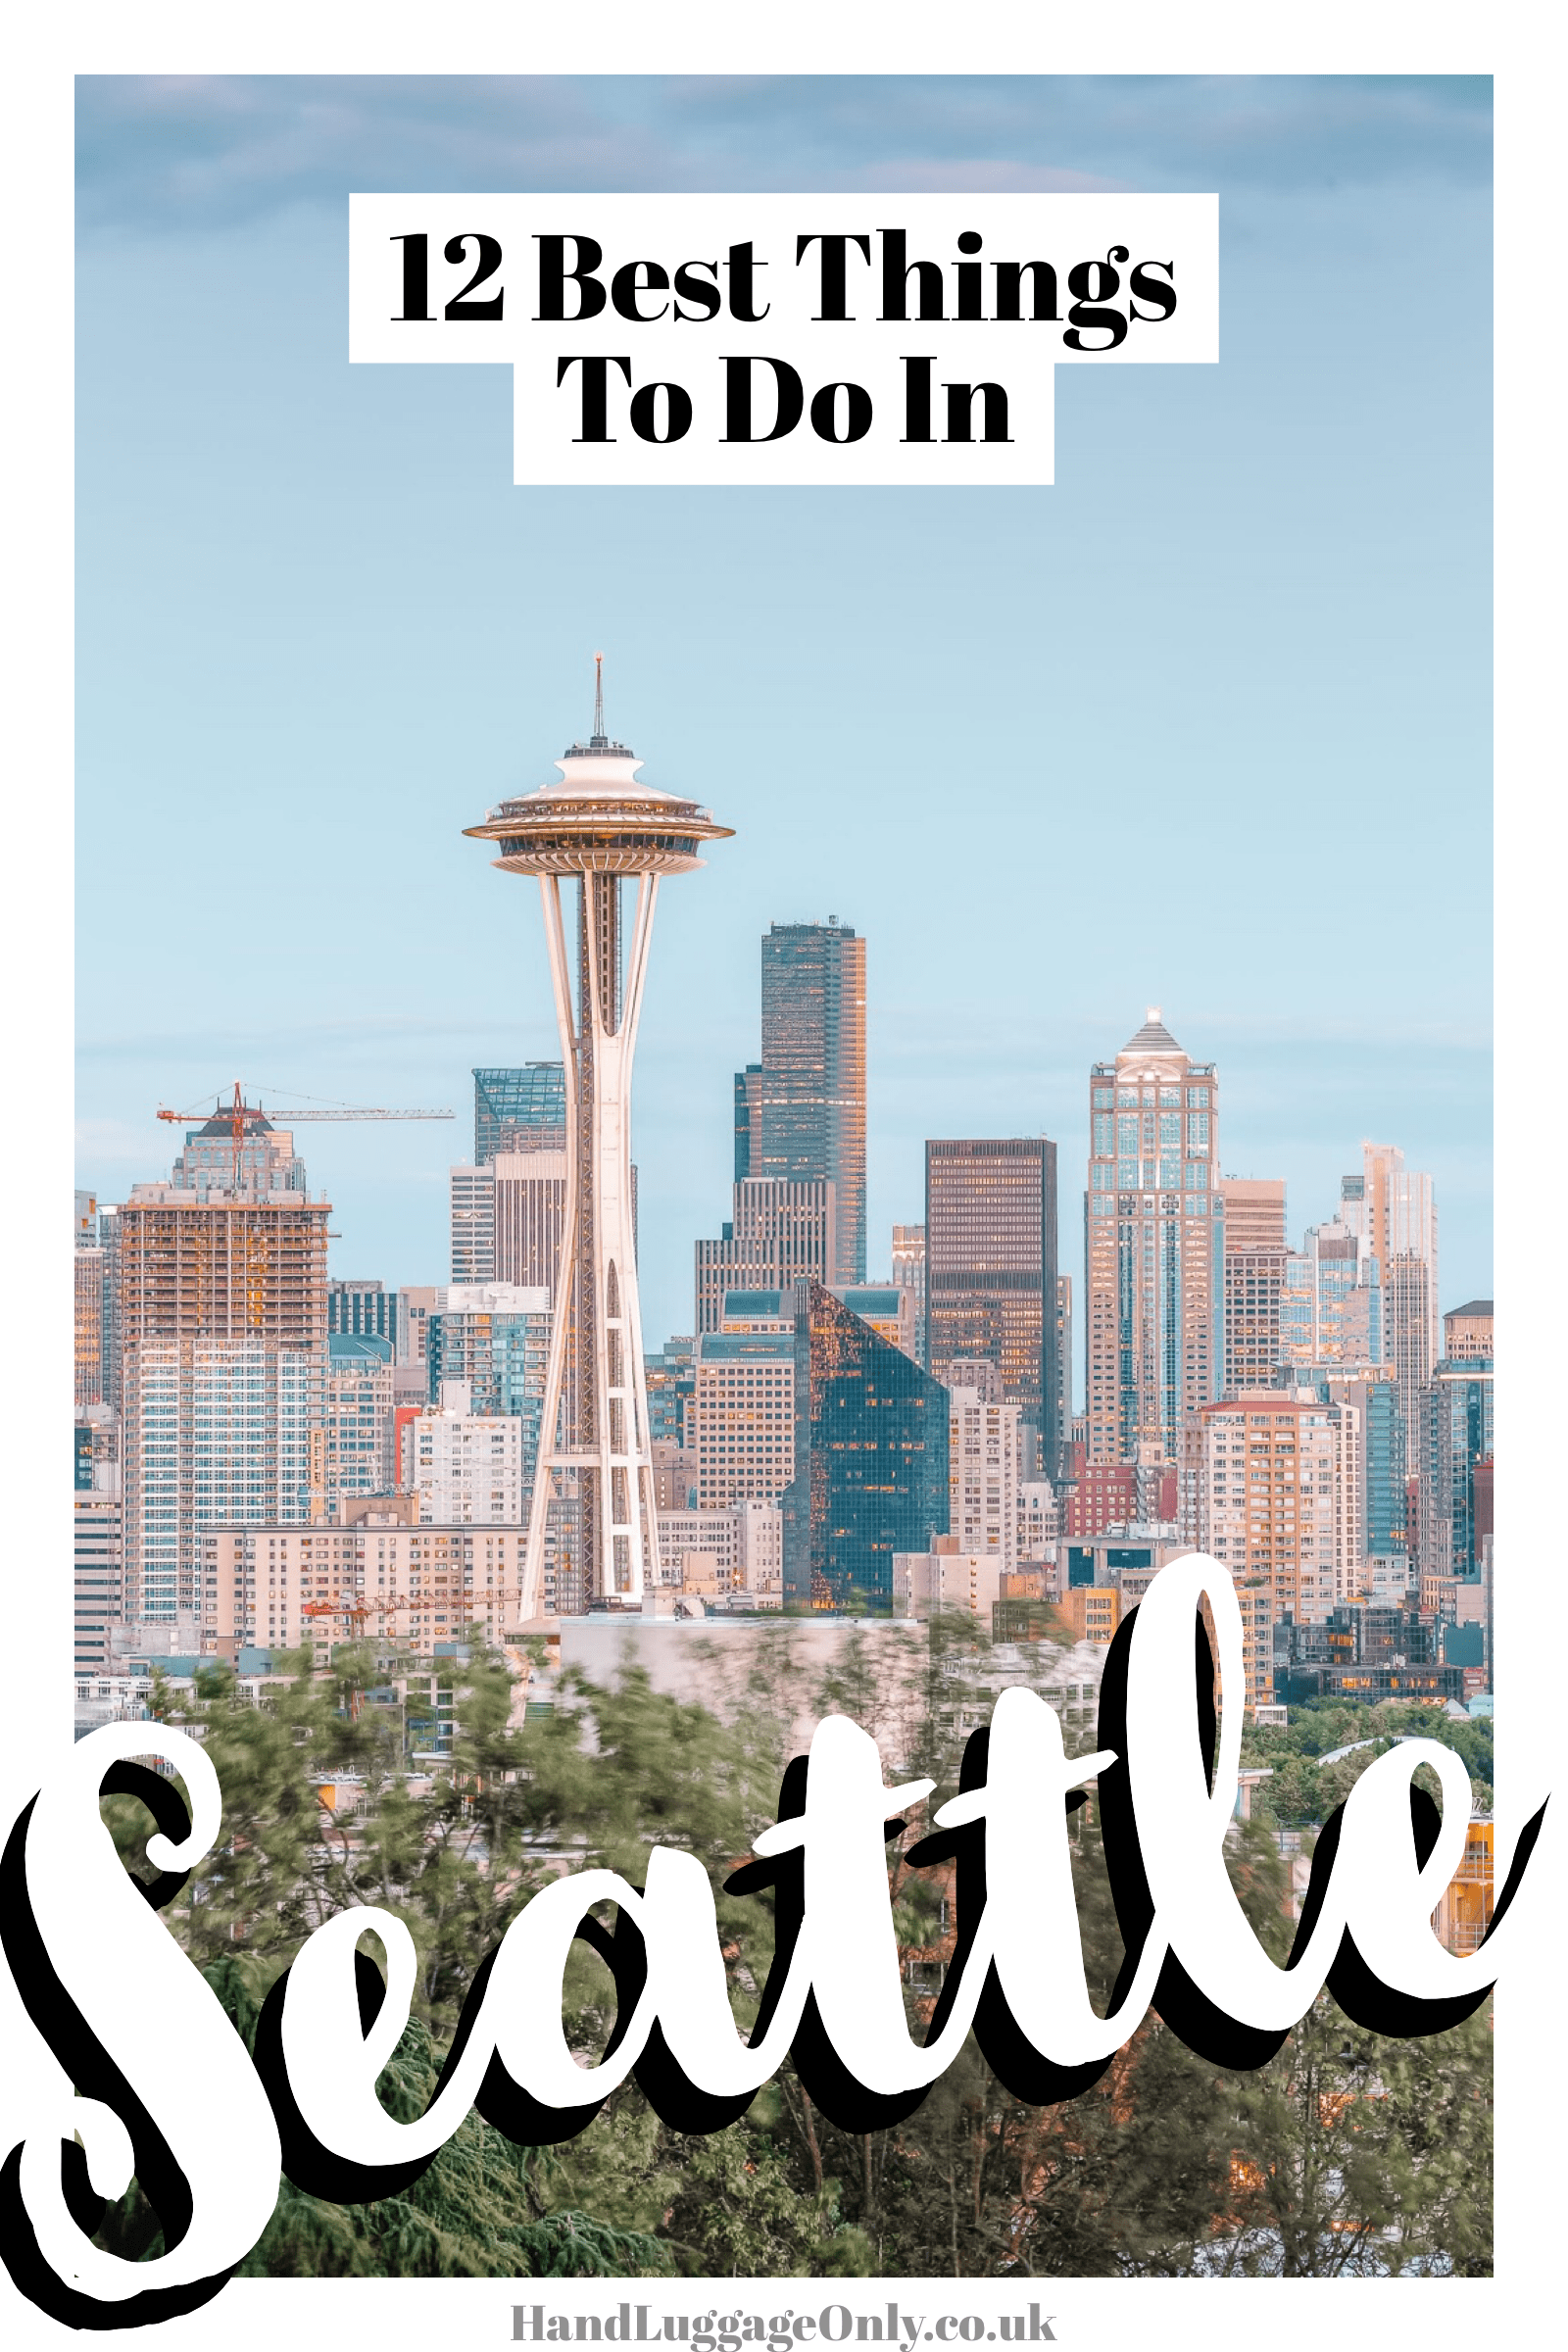 12 Best Things To Do In Seattle (1)